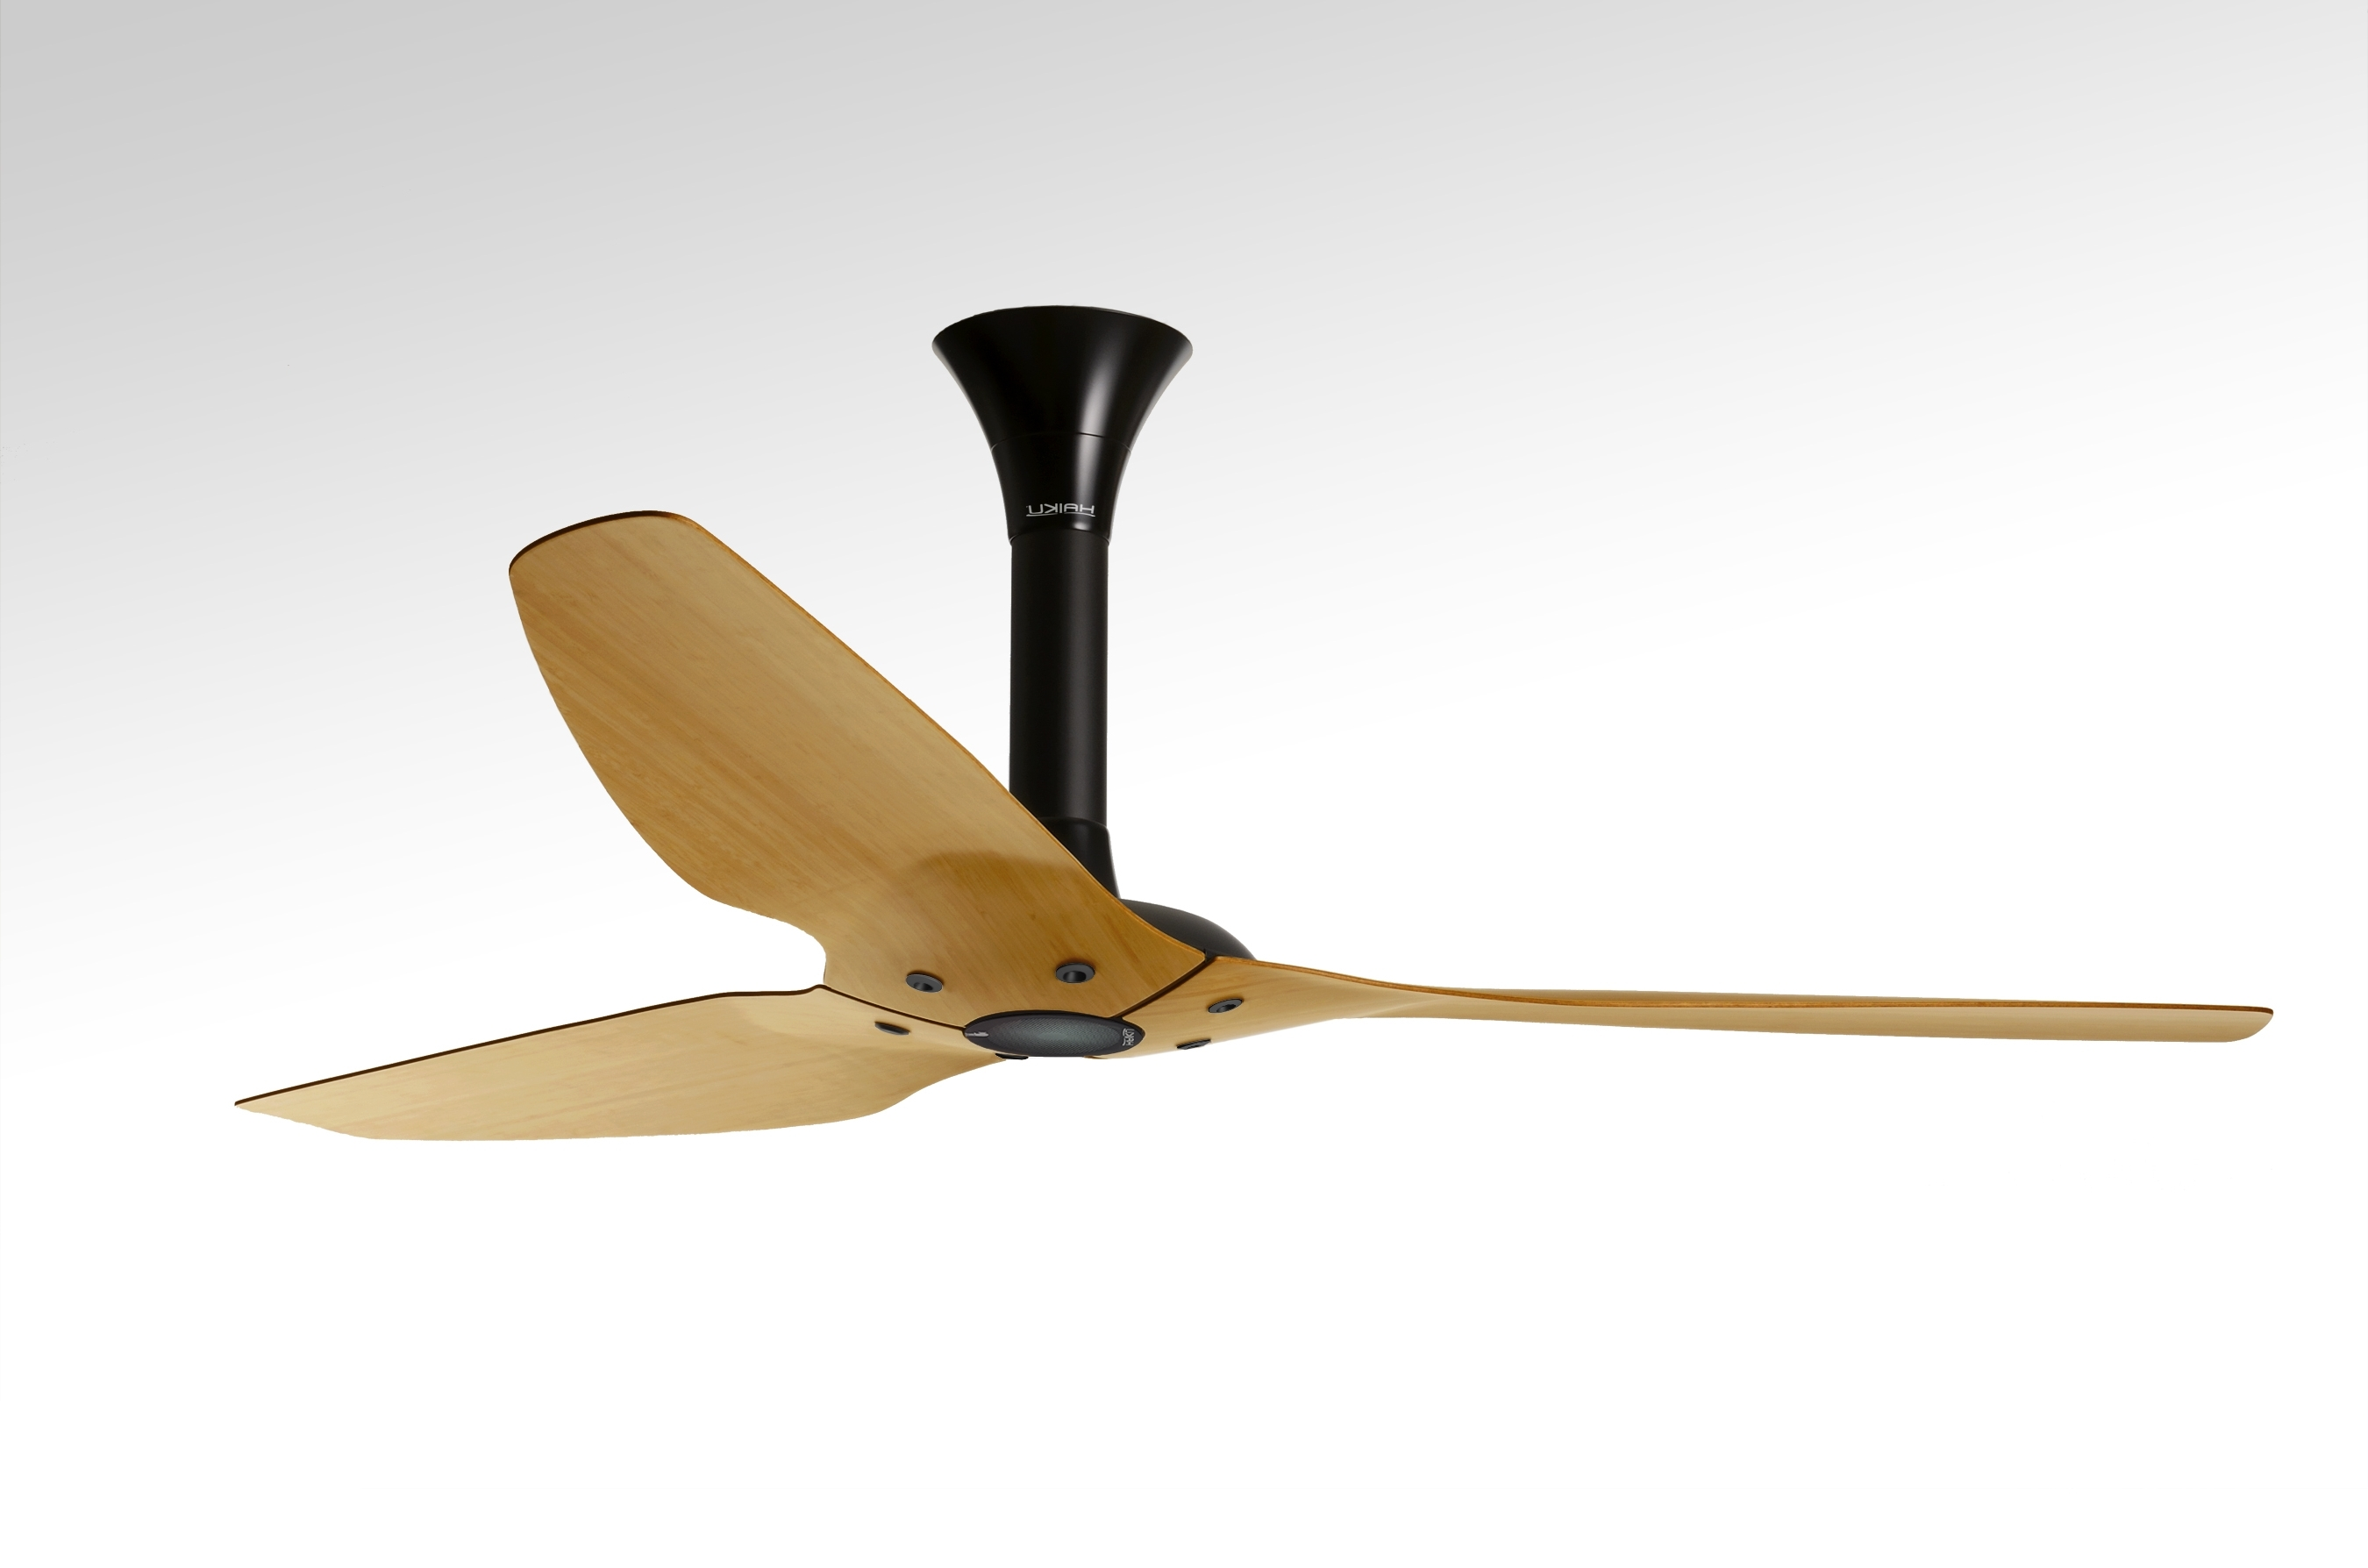 Bamboo Outdoor Ceiling Fans Intended For Recent Bamboo Ceiling Fans With Lights With Regard To House (View 3 of 20)